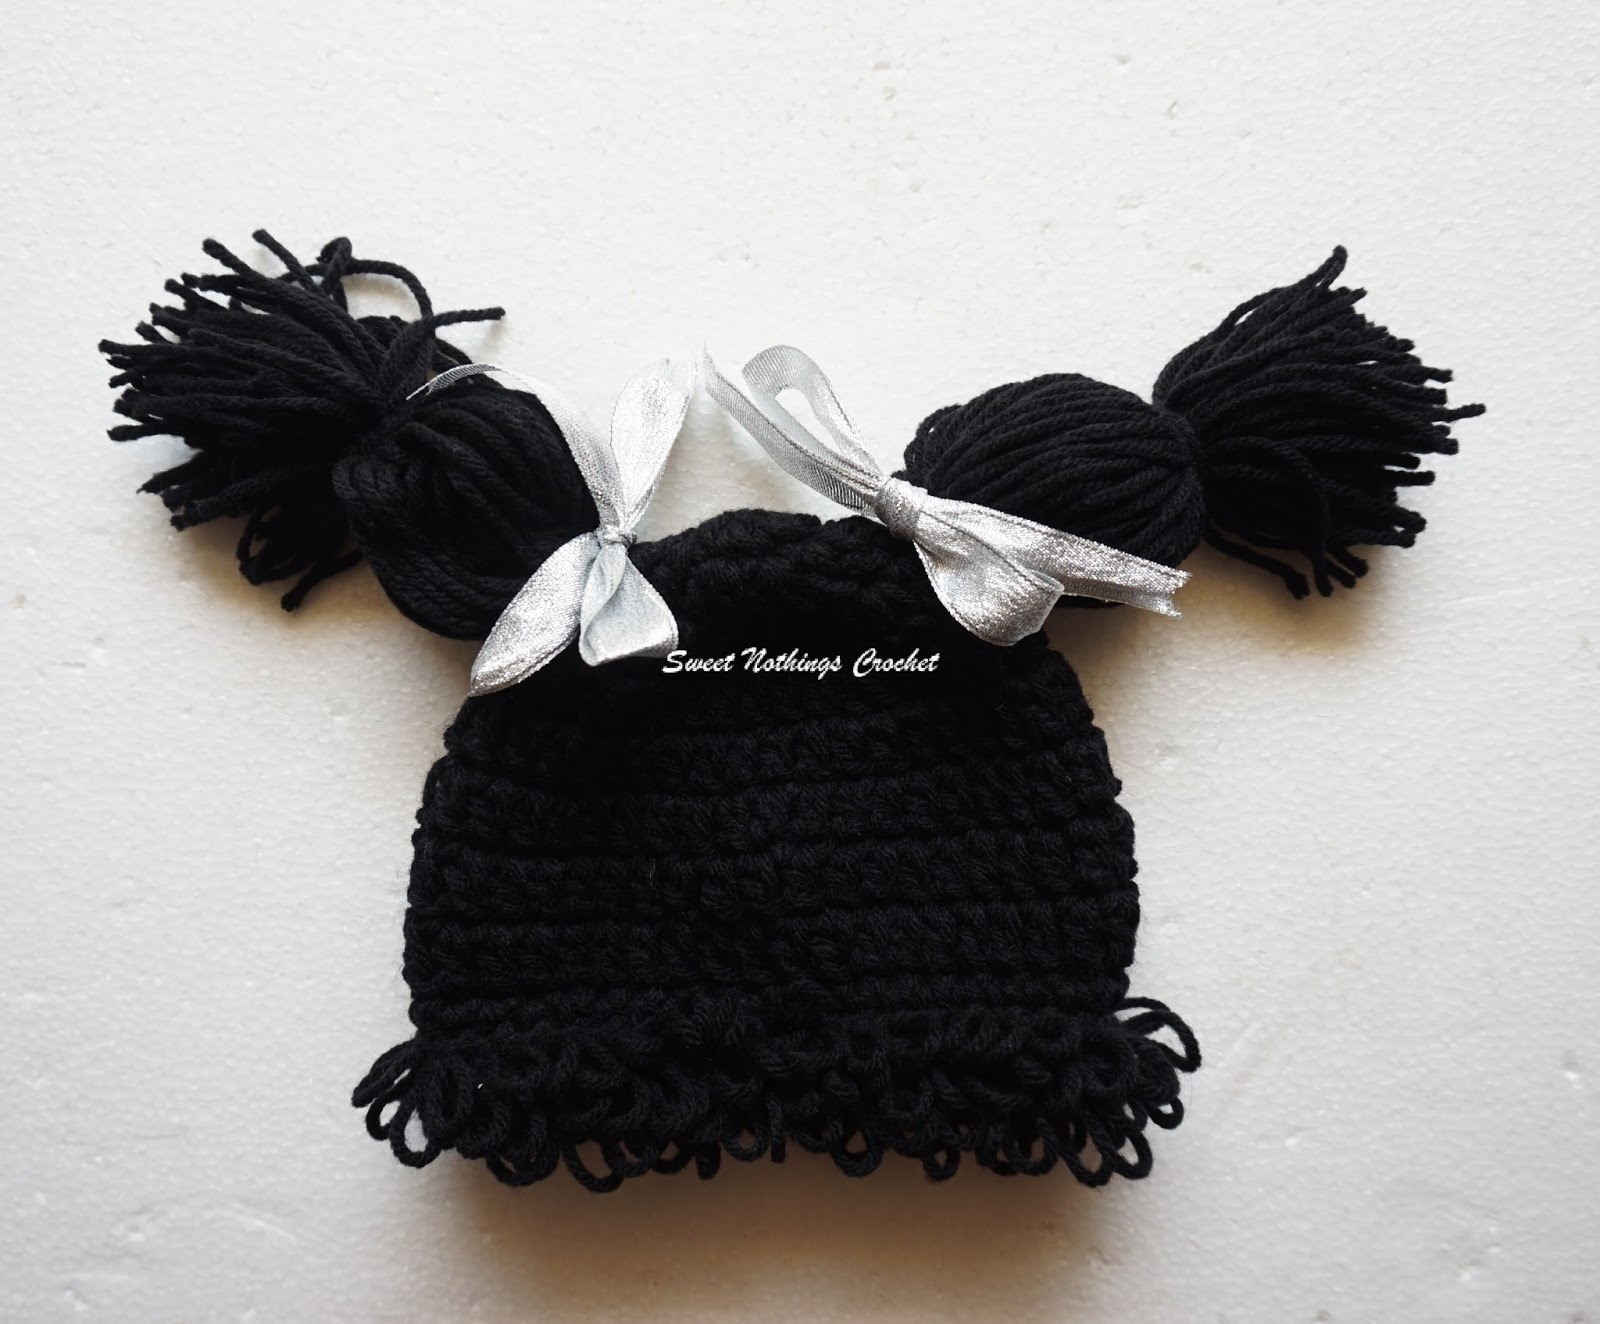 Sweet Nothings Crochet: CABBAGE PATCH DOLL HAT